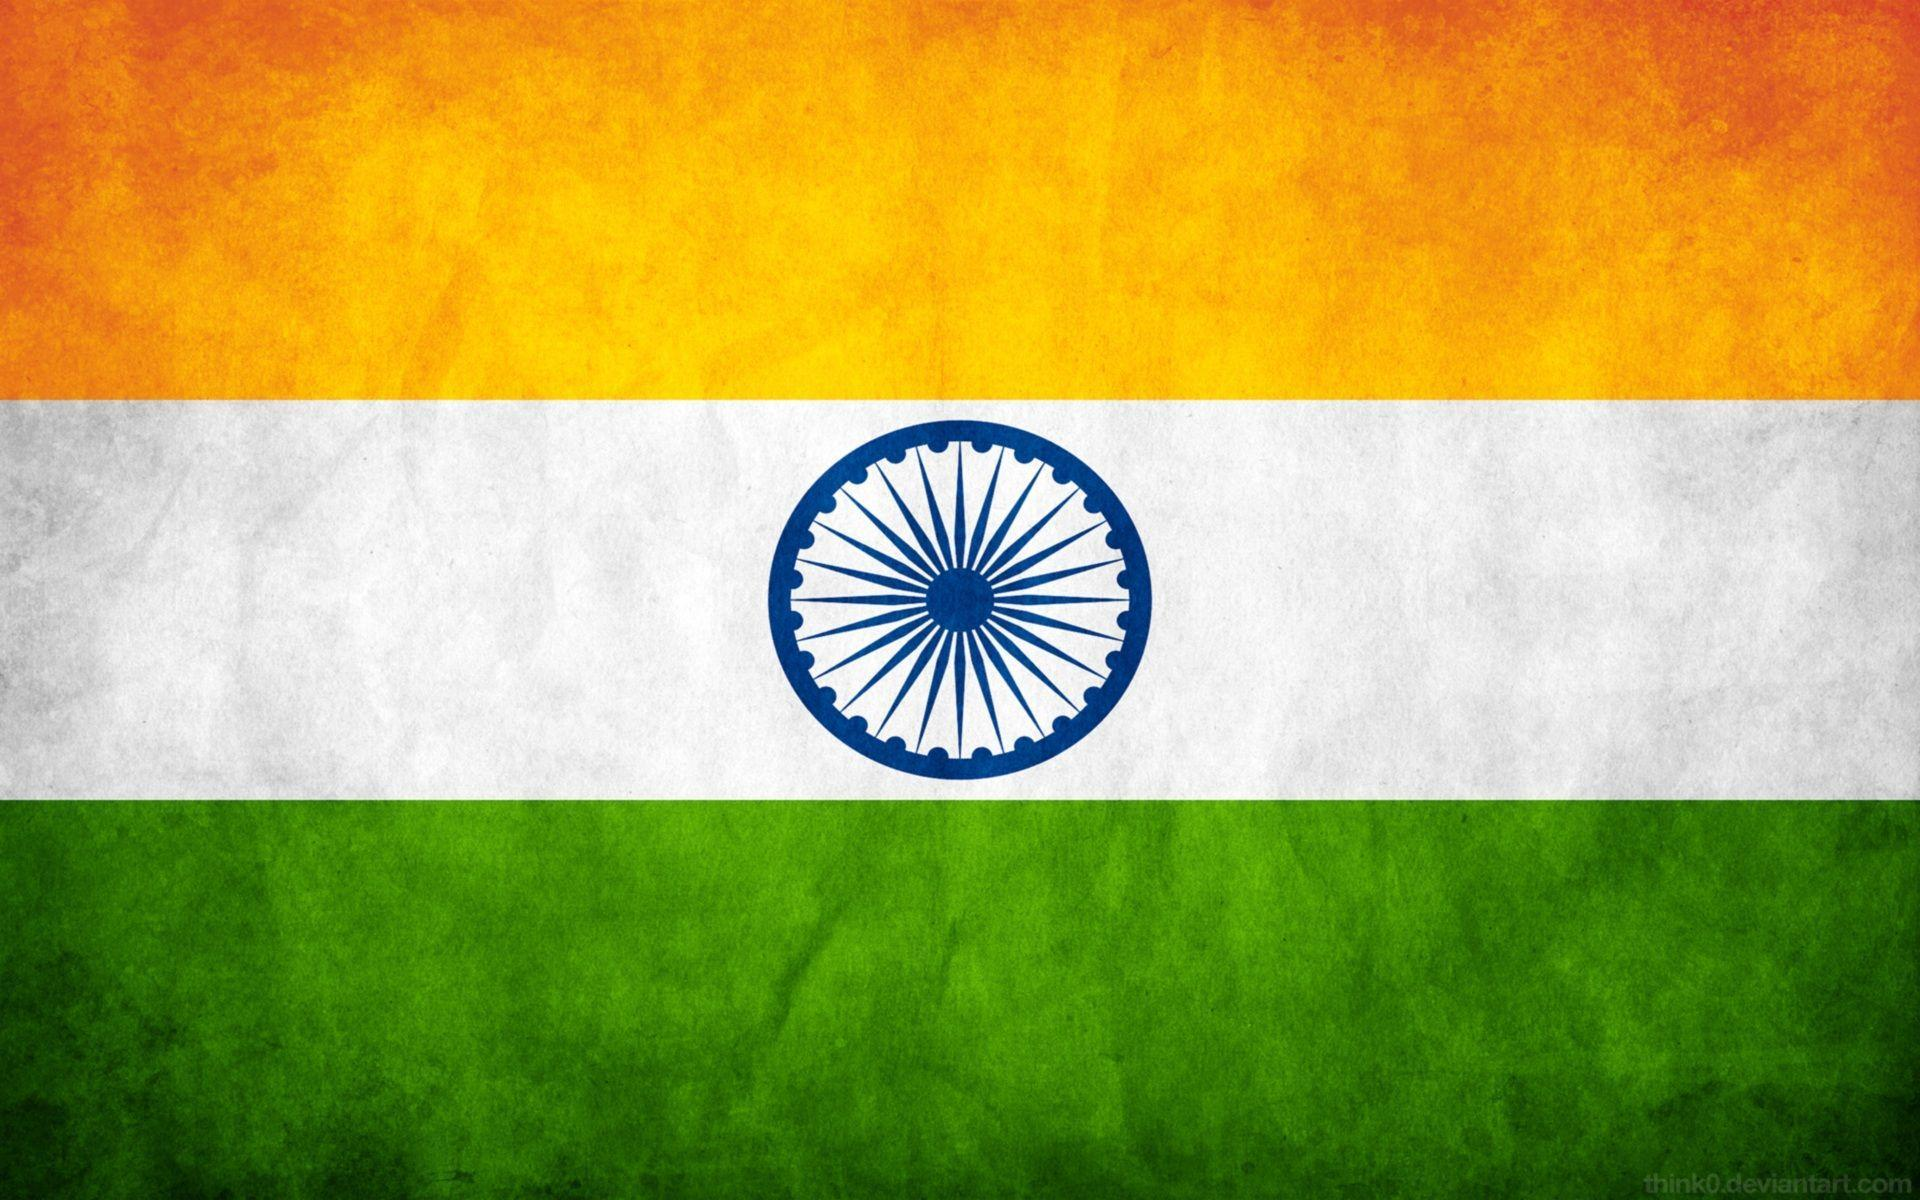 Indian Flag Wallpapers - HD Images, Photos [Free Download] for PC/